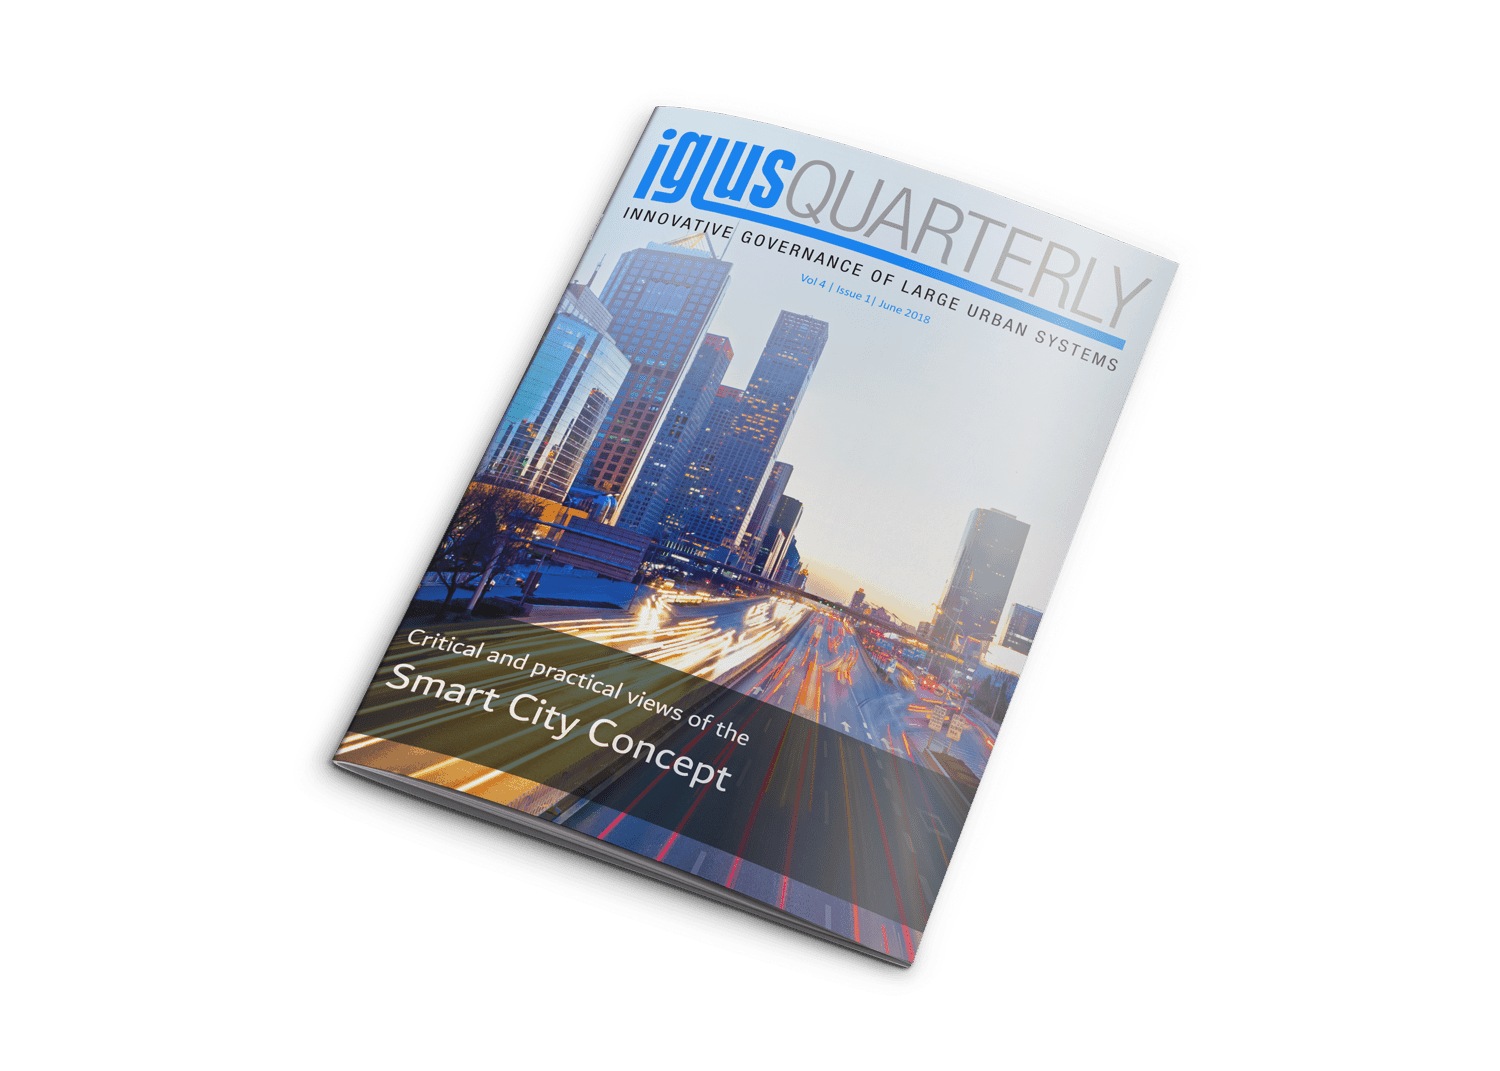 IGLUS-Quarterly-Vol-4-Issue-1